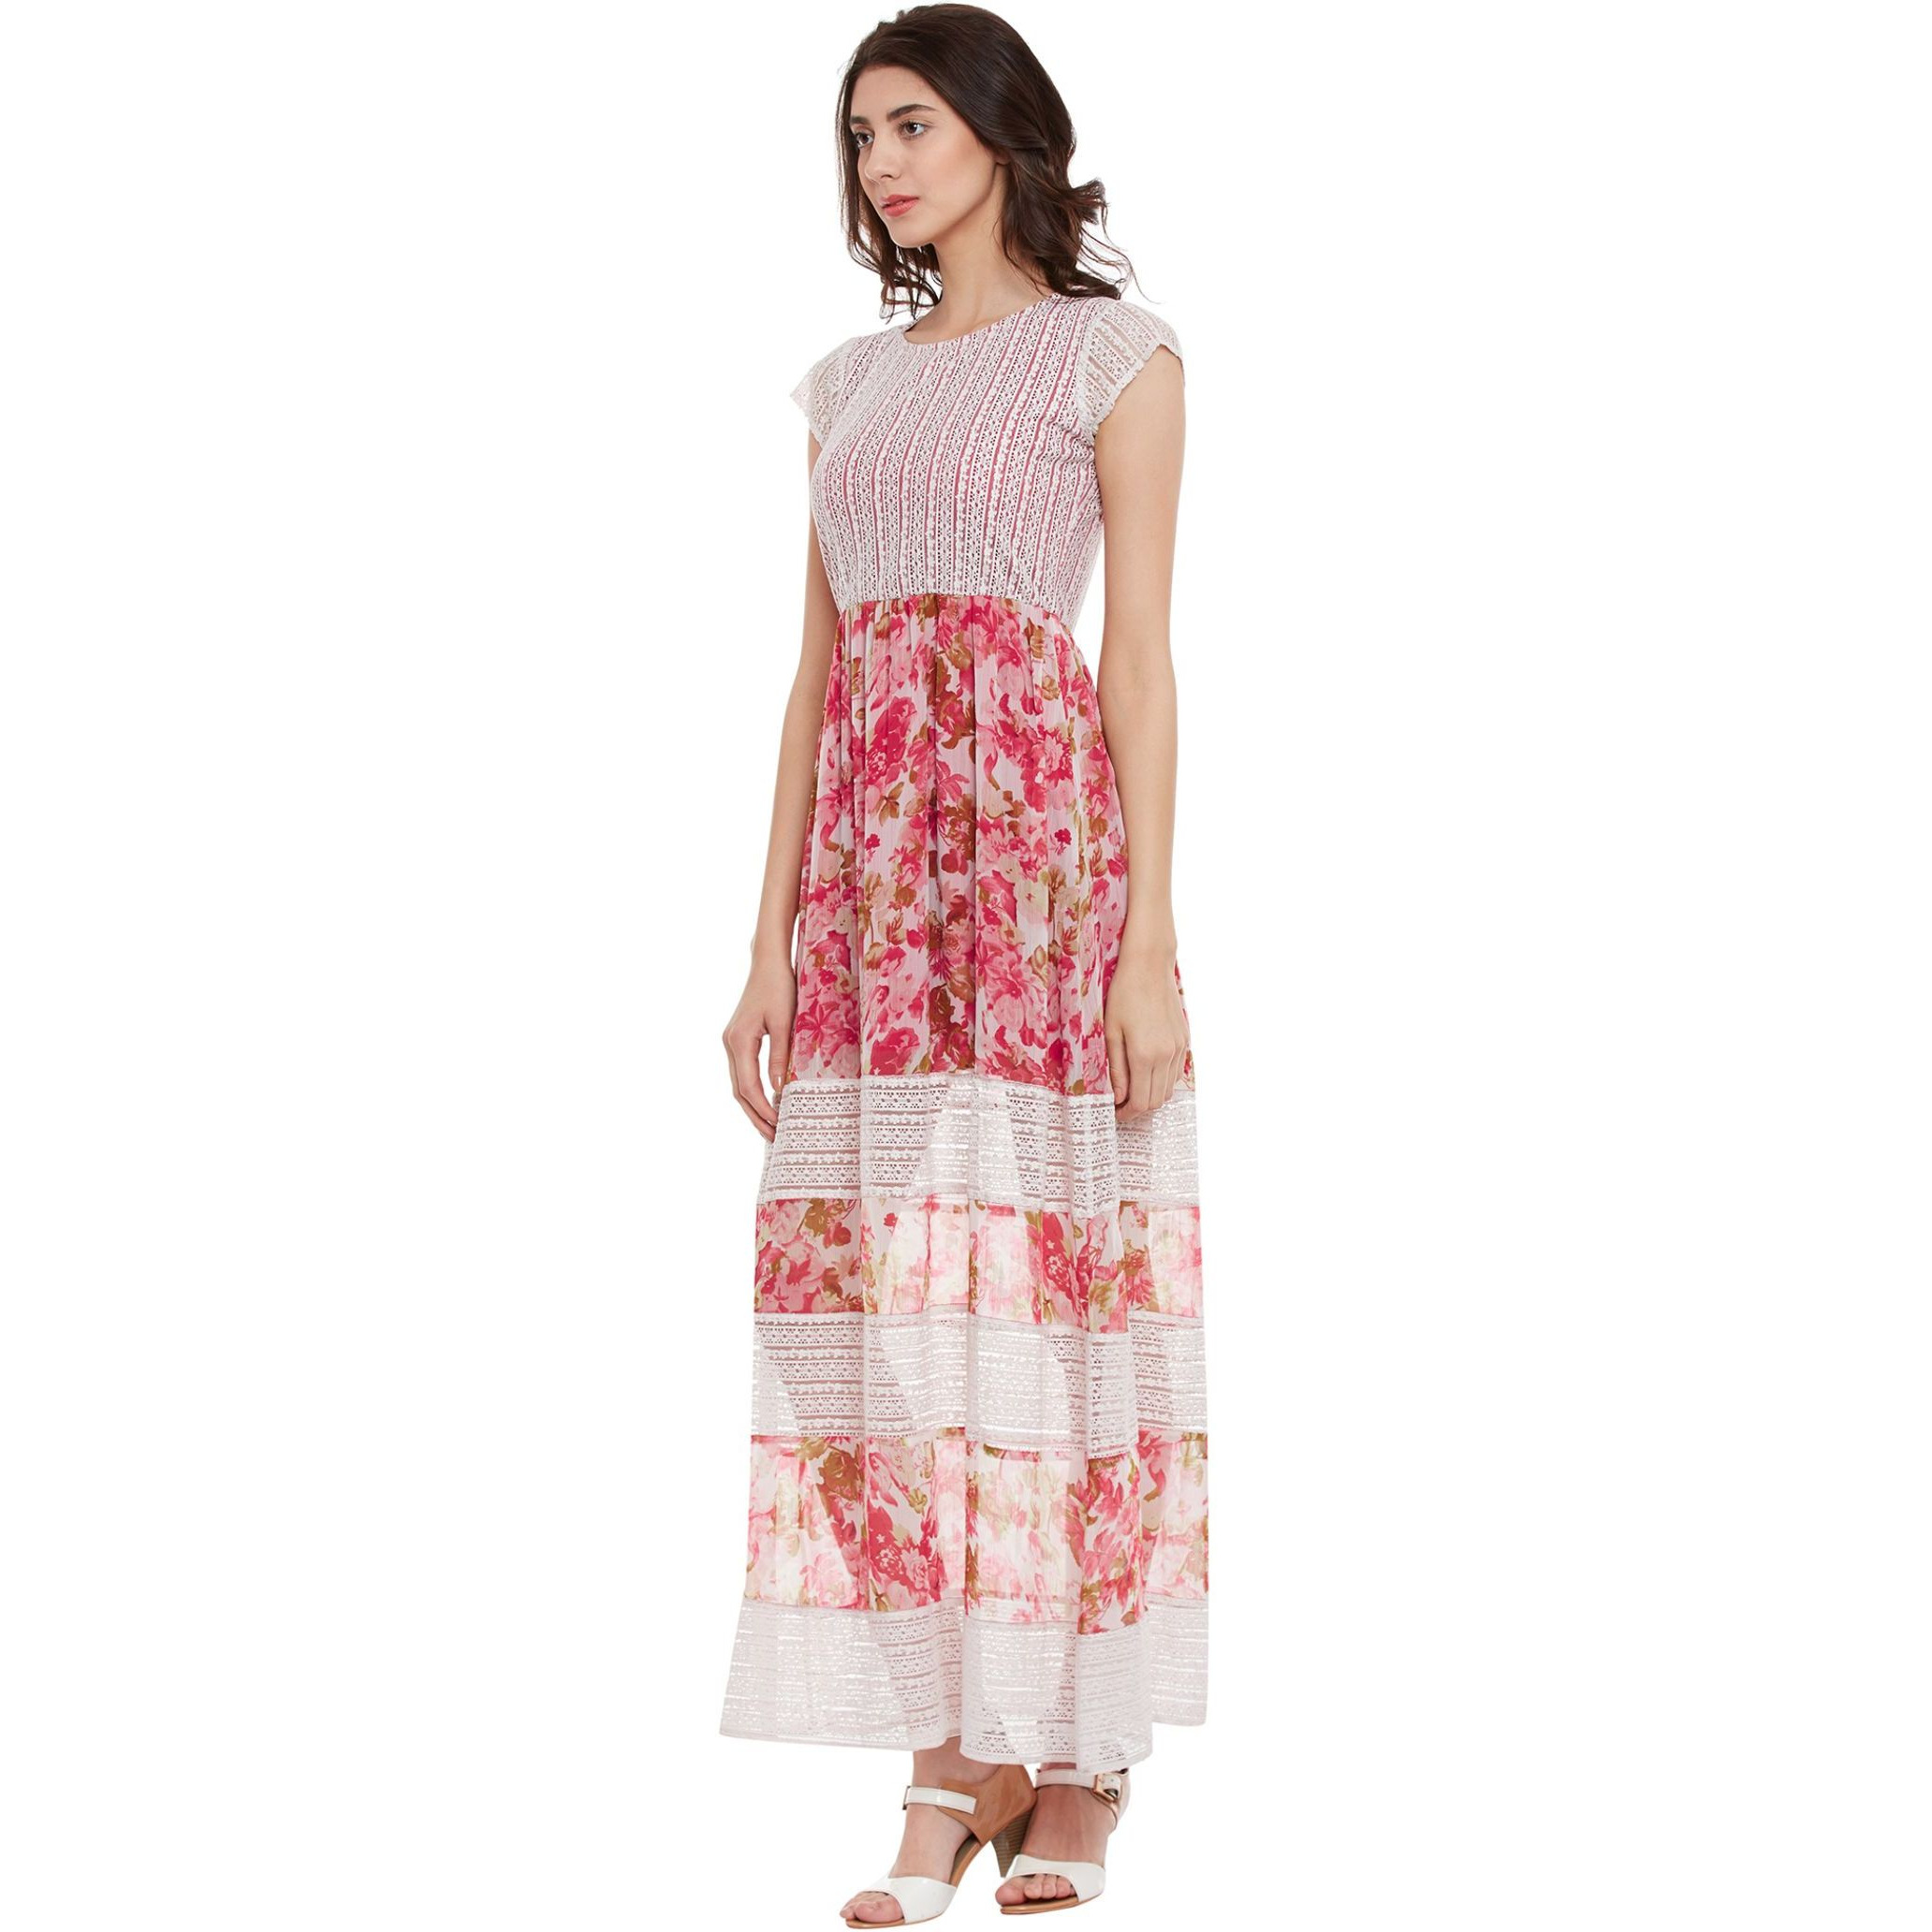 Maxi Dress With Floral Print And Lace Inserts (Size:S)